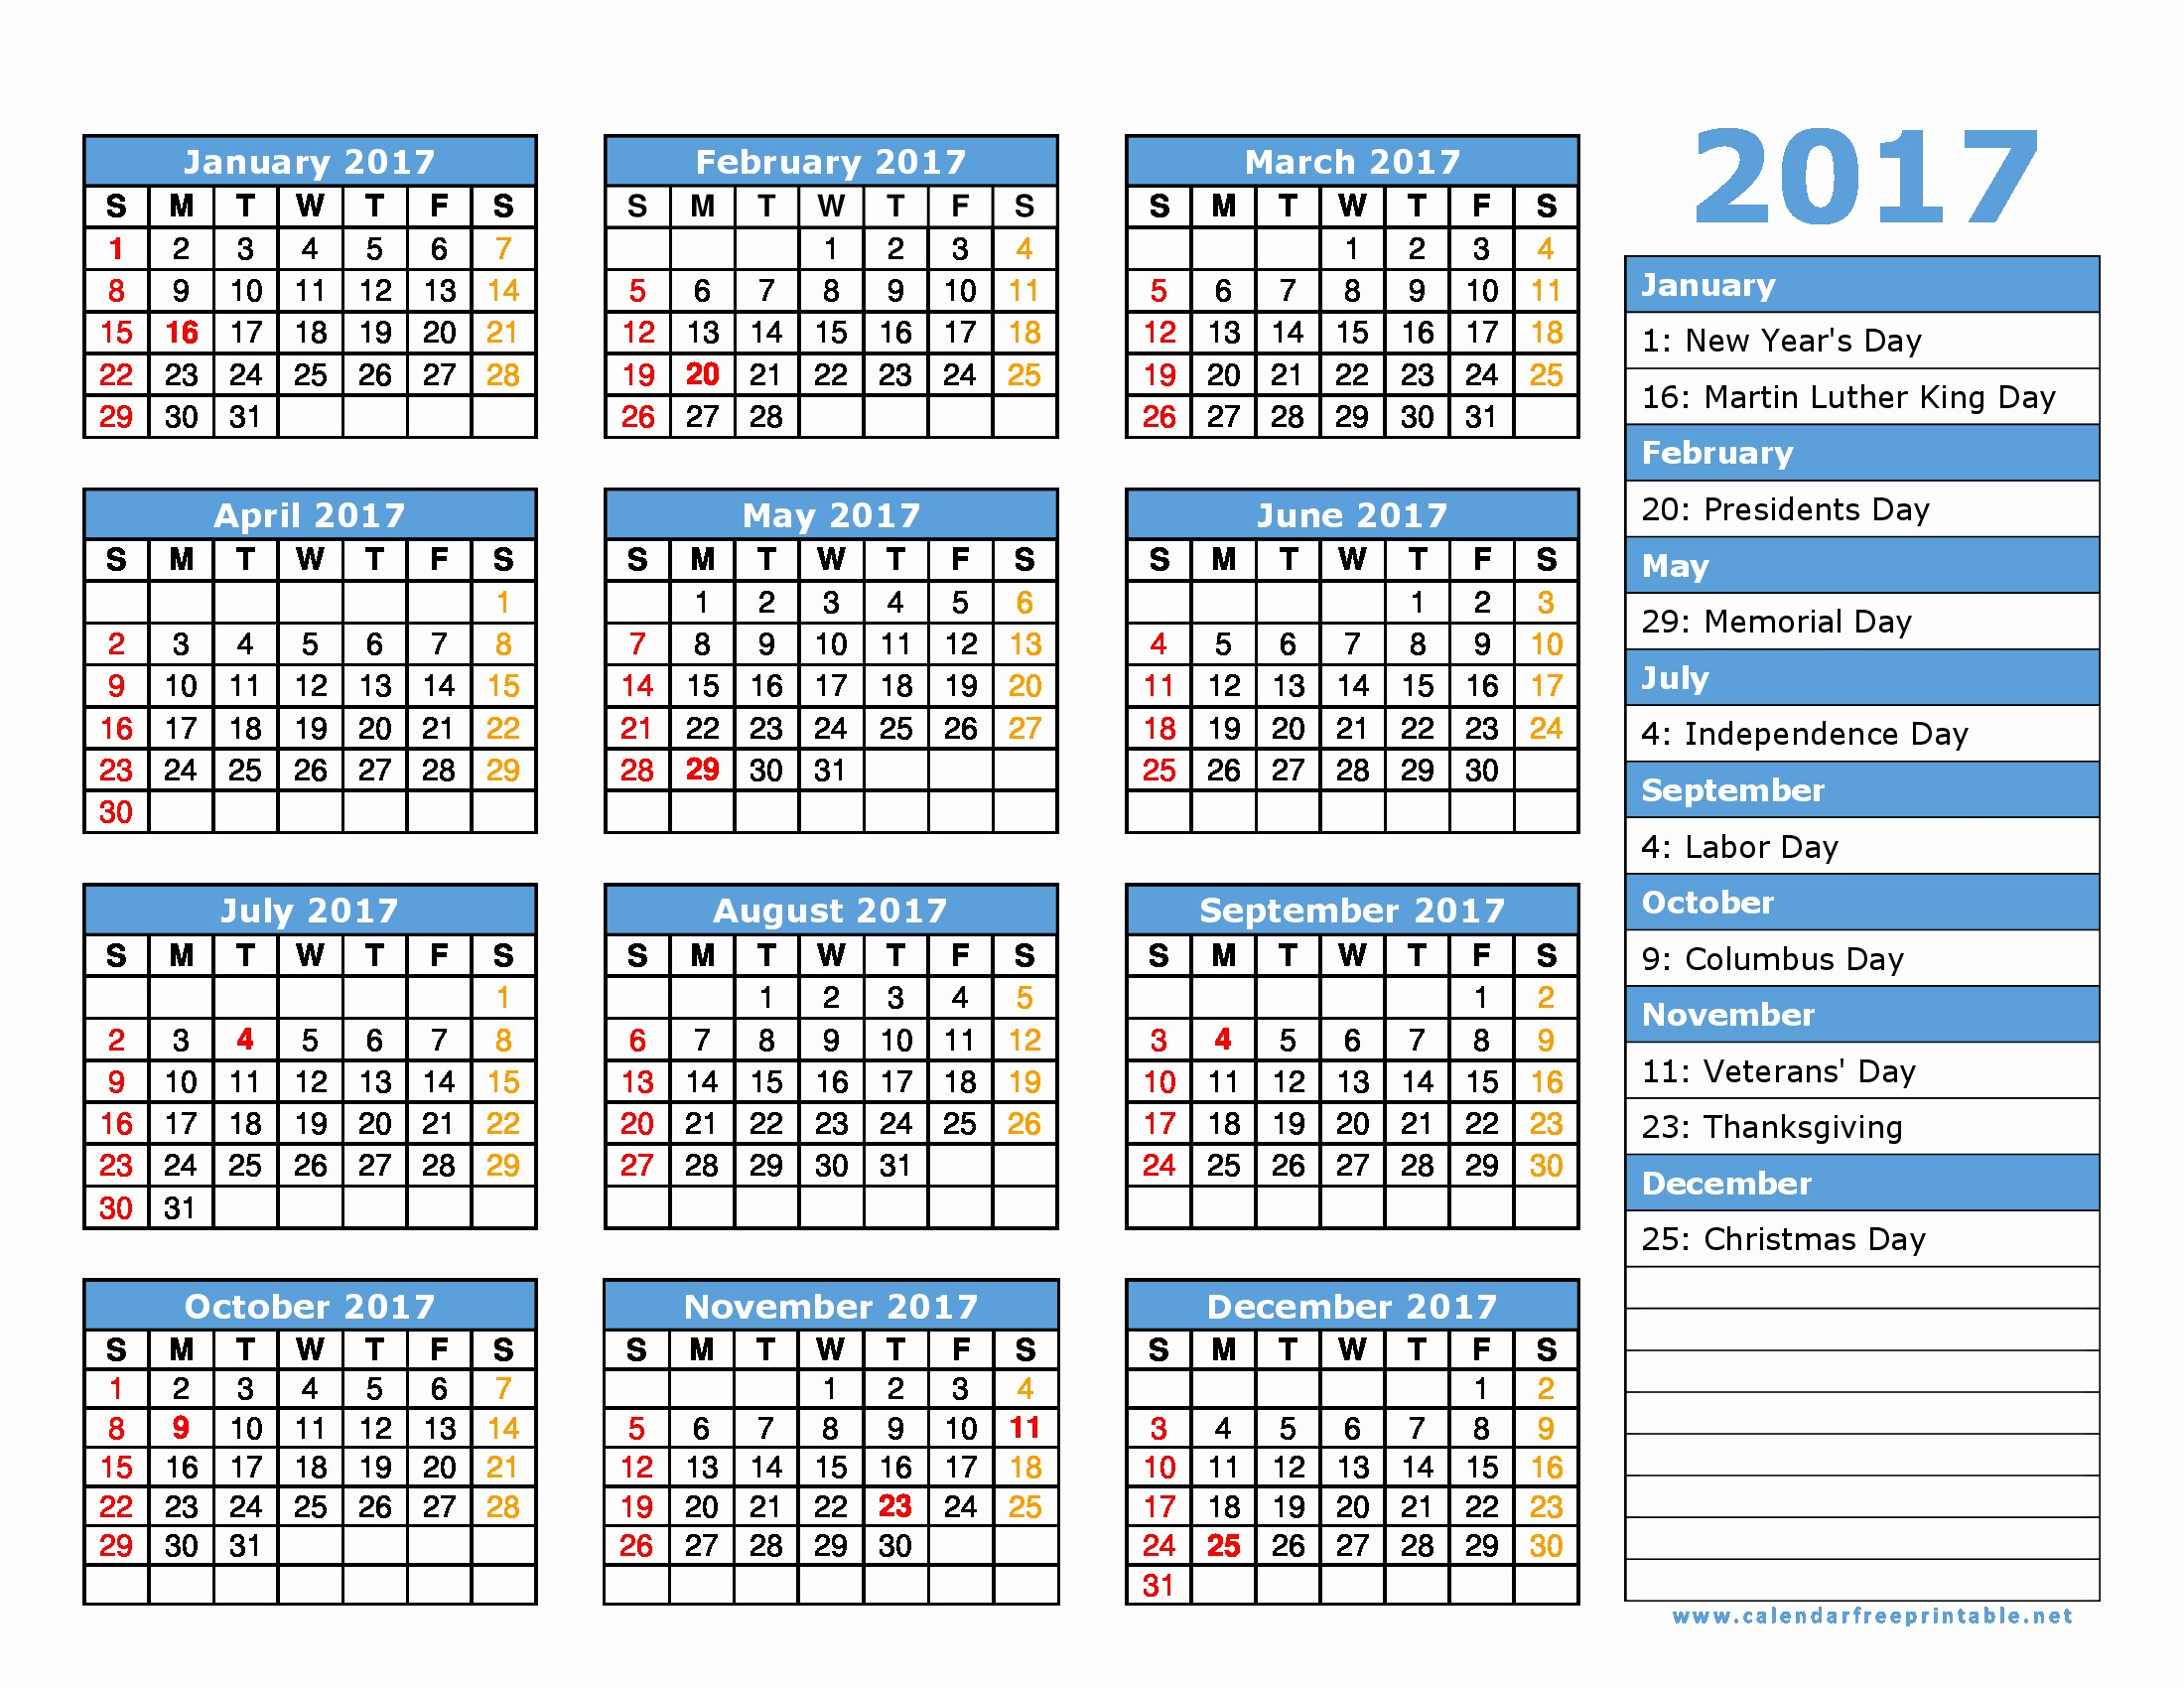 Calendar 2017 Template with Holidays New 2017 Calendar Printable with Holidays